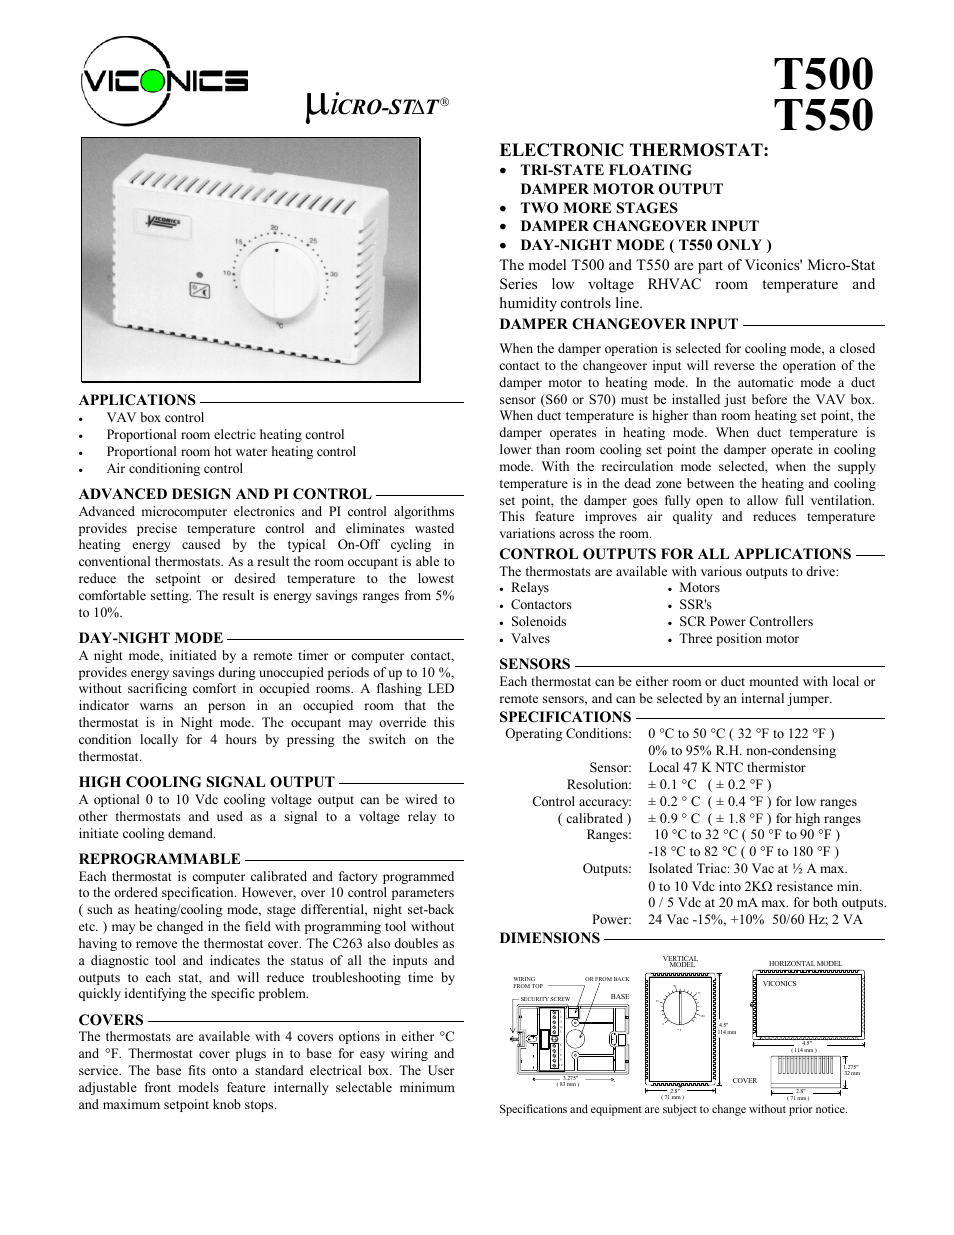 Abb Vfd Ach550 User Manual Wiring Diagram 3aua0000014757 Cx Mu Revd E Clipse Bypass Users